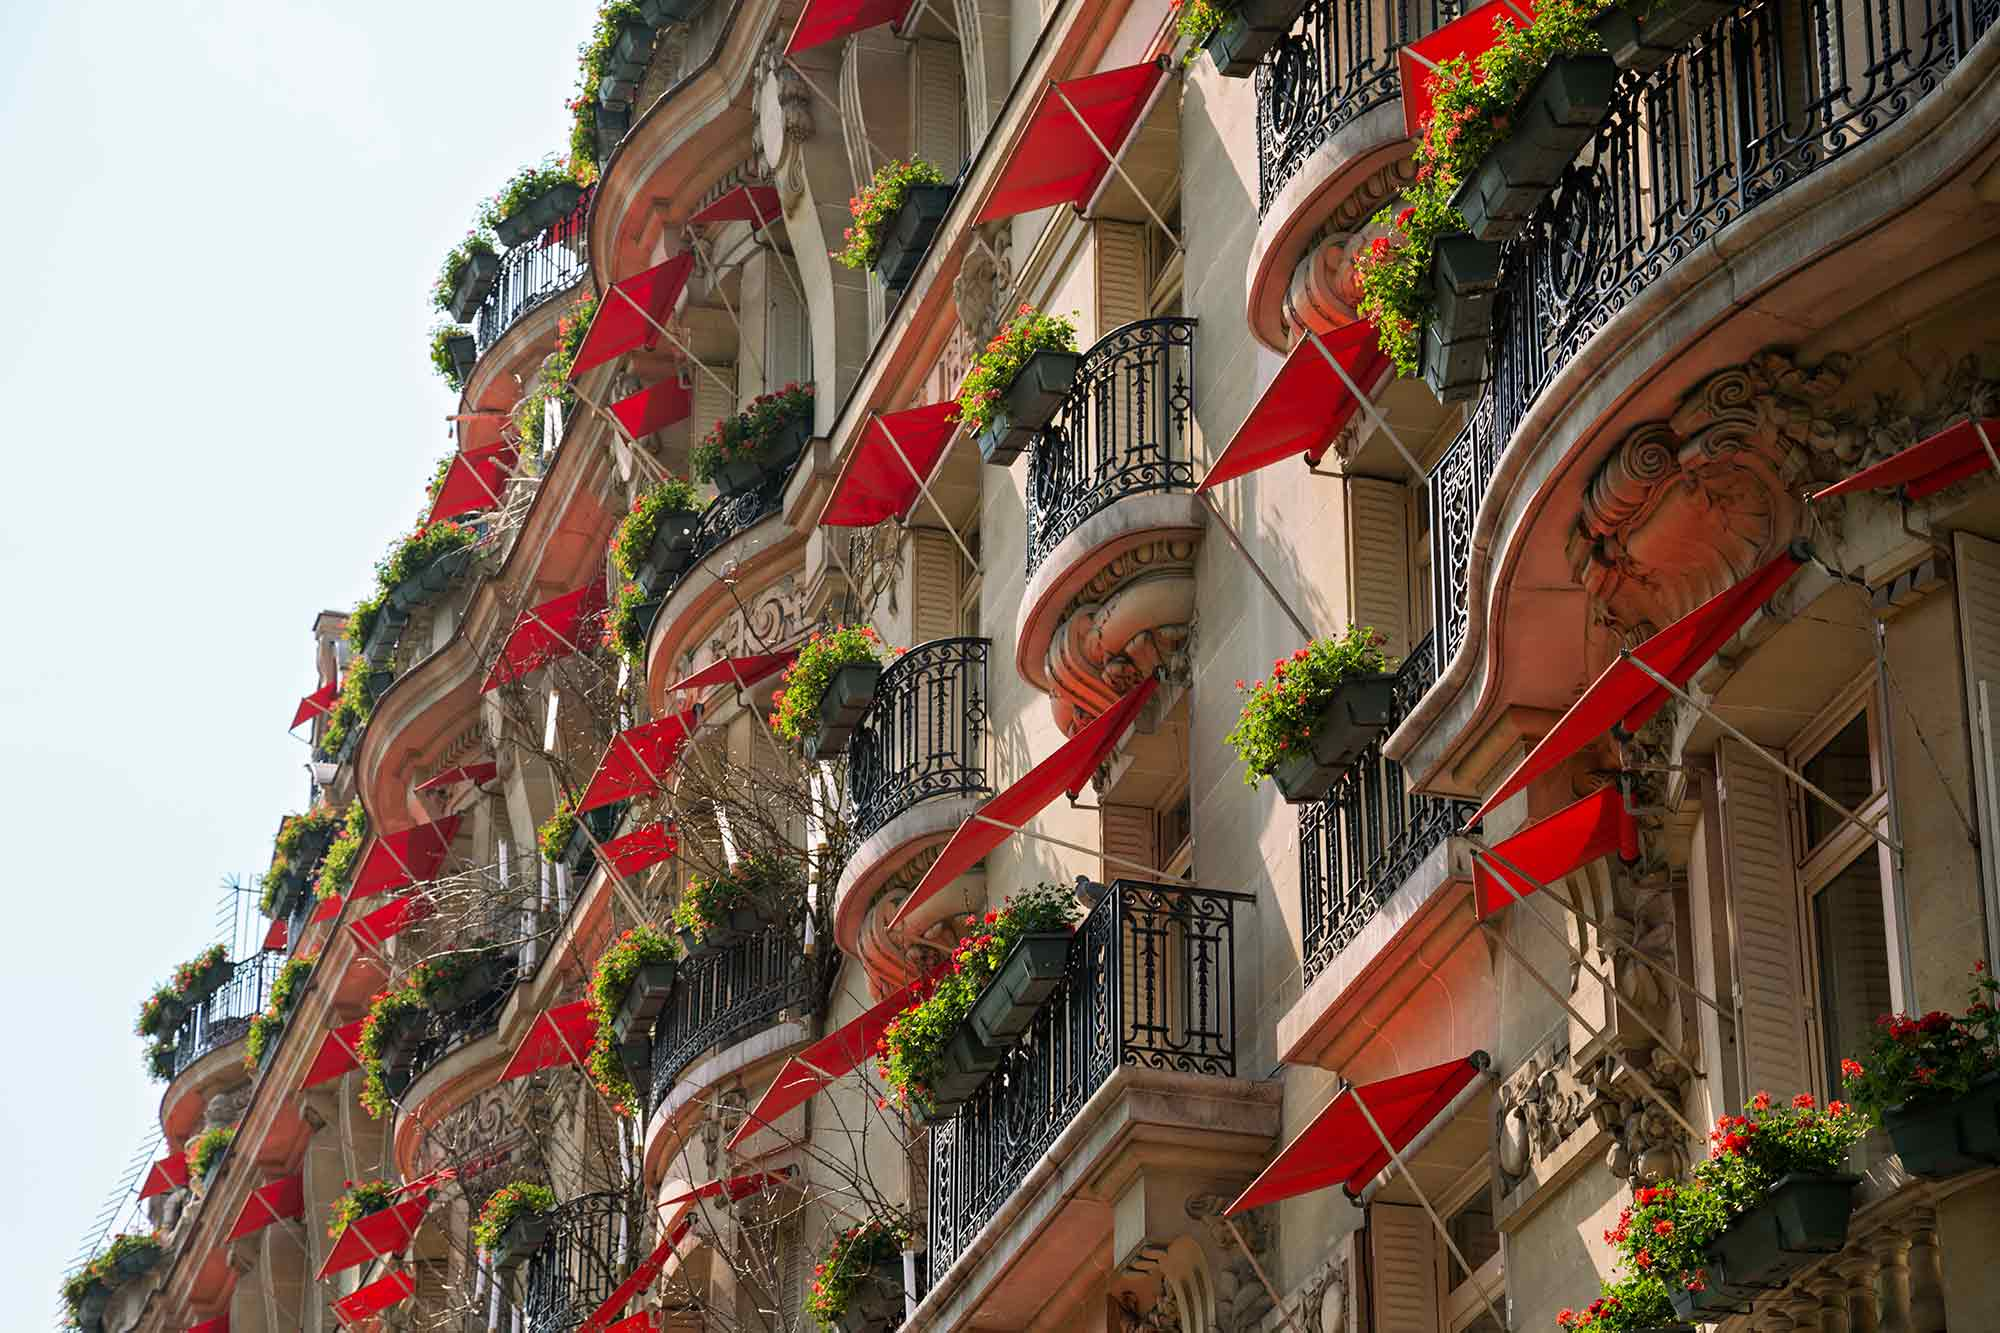 A hotel facade near Champs-Élysées in Paris, France. © Ulli Maier & Nisa Maier